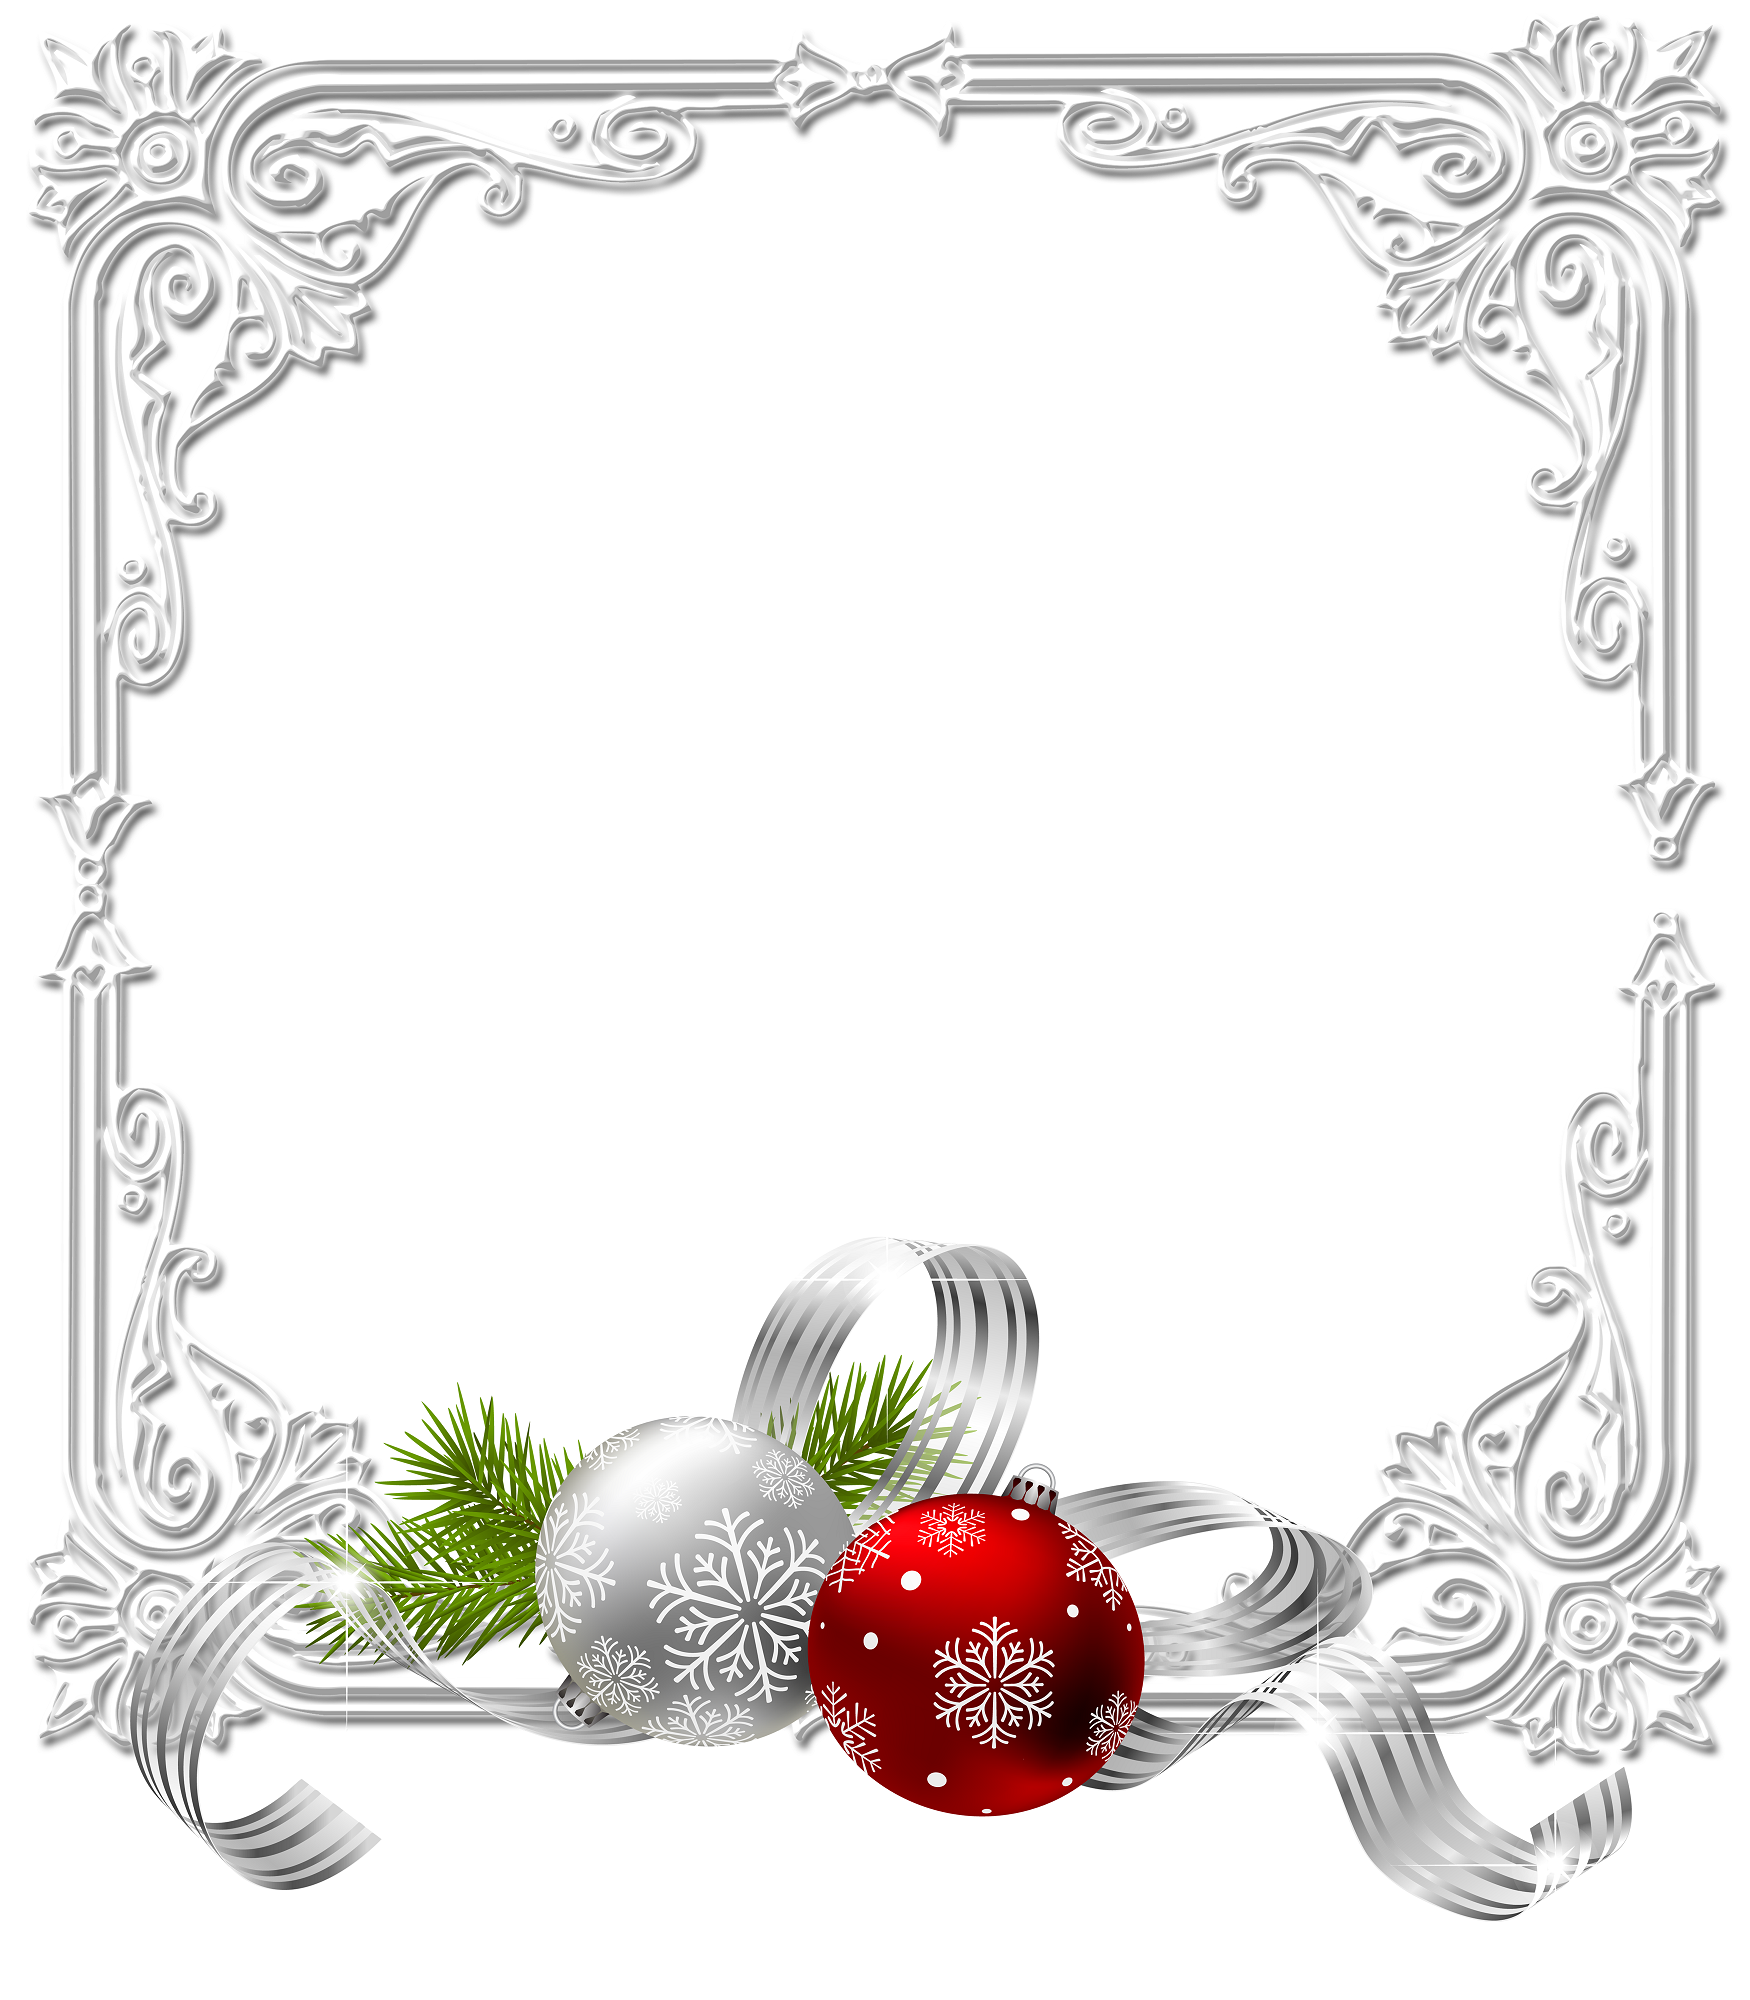 silver christmas frame with bulbs